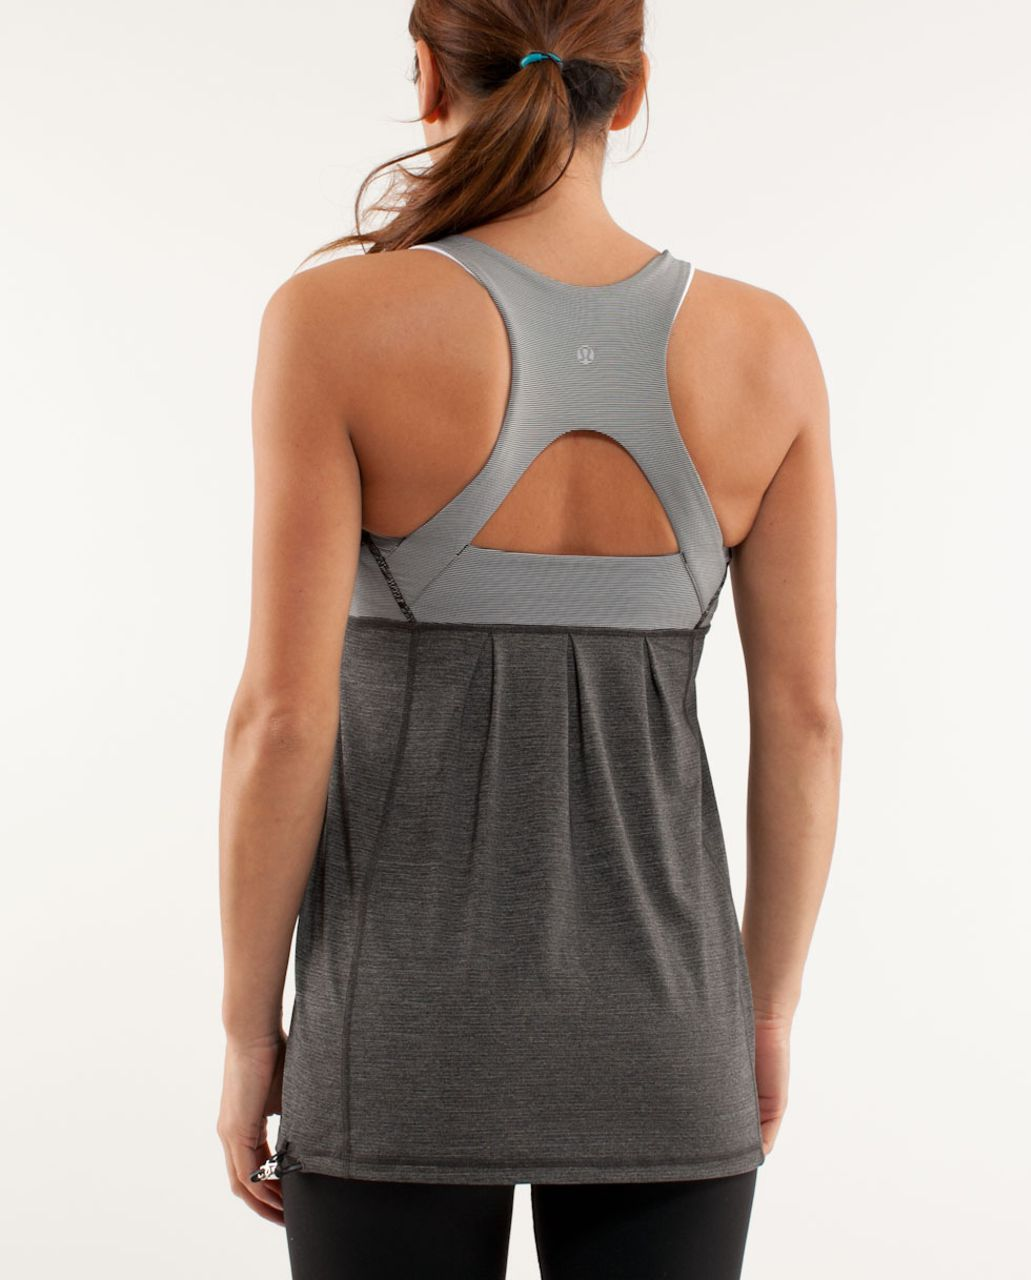 Lululemon Run:  Your Heart Out Tank - Heathered Black /  White Black Microstripe